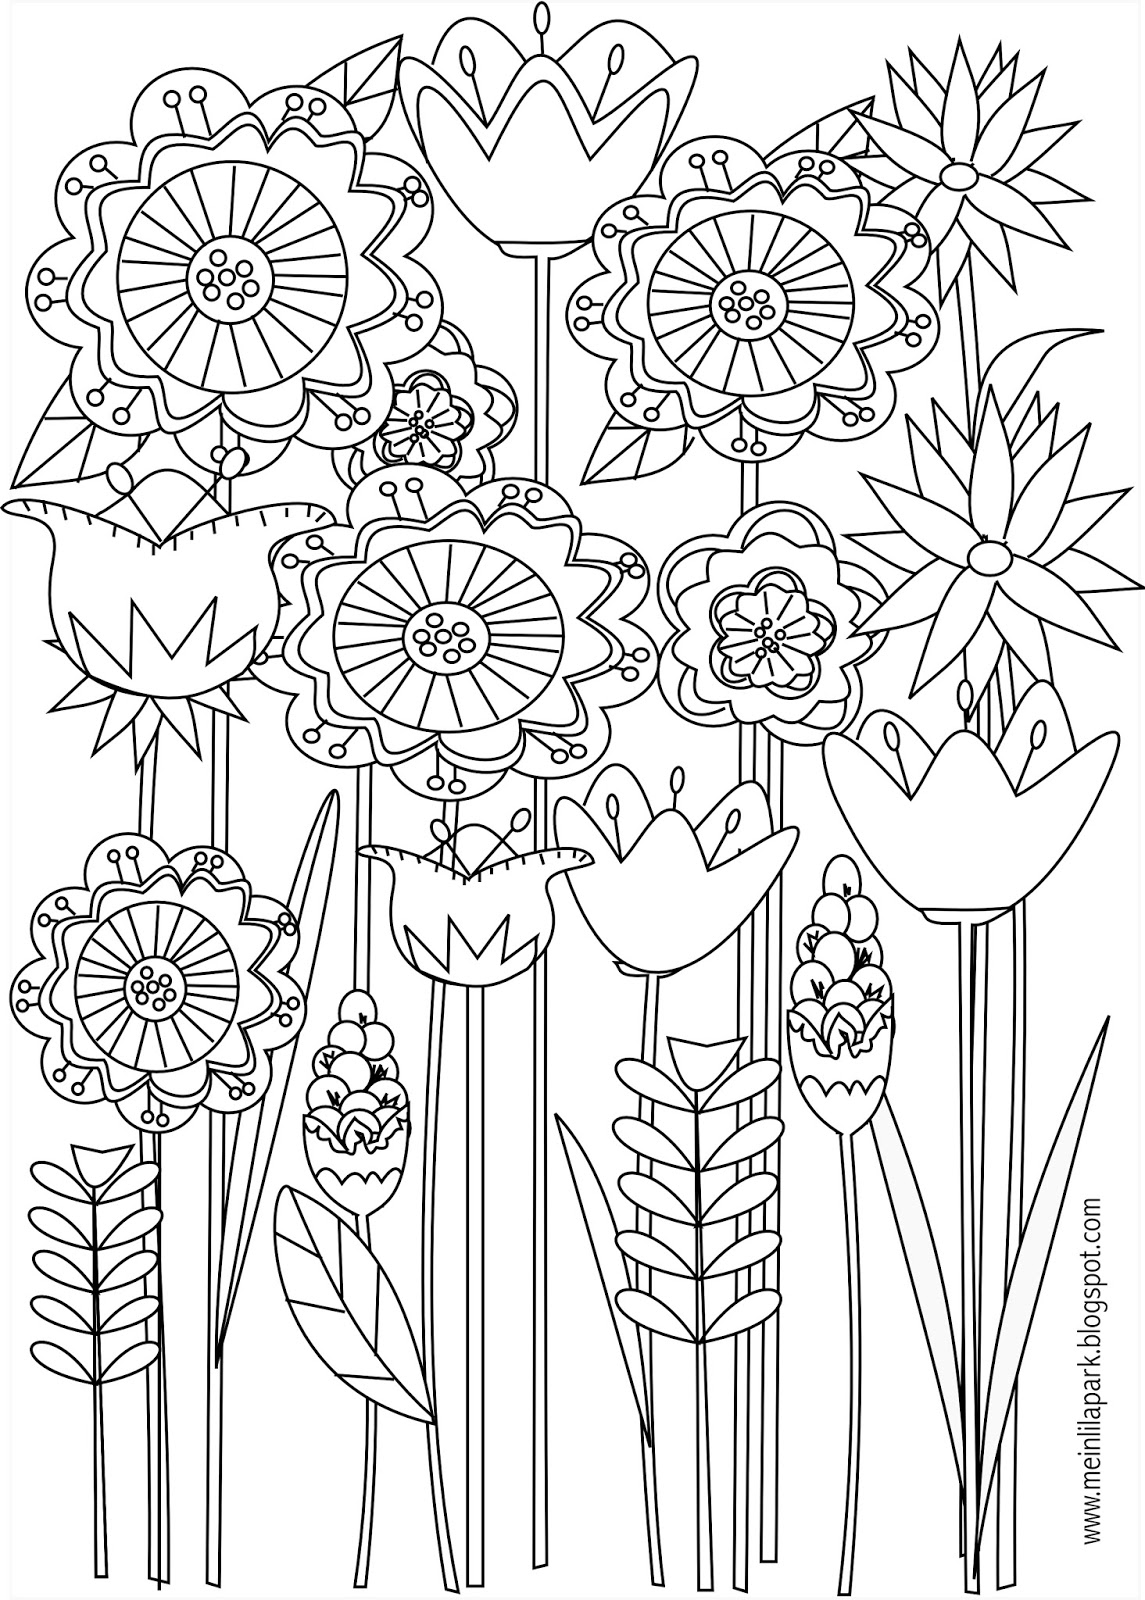 Free Printable Floral Coloring Page